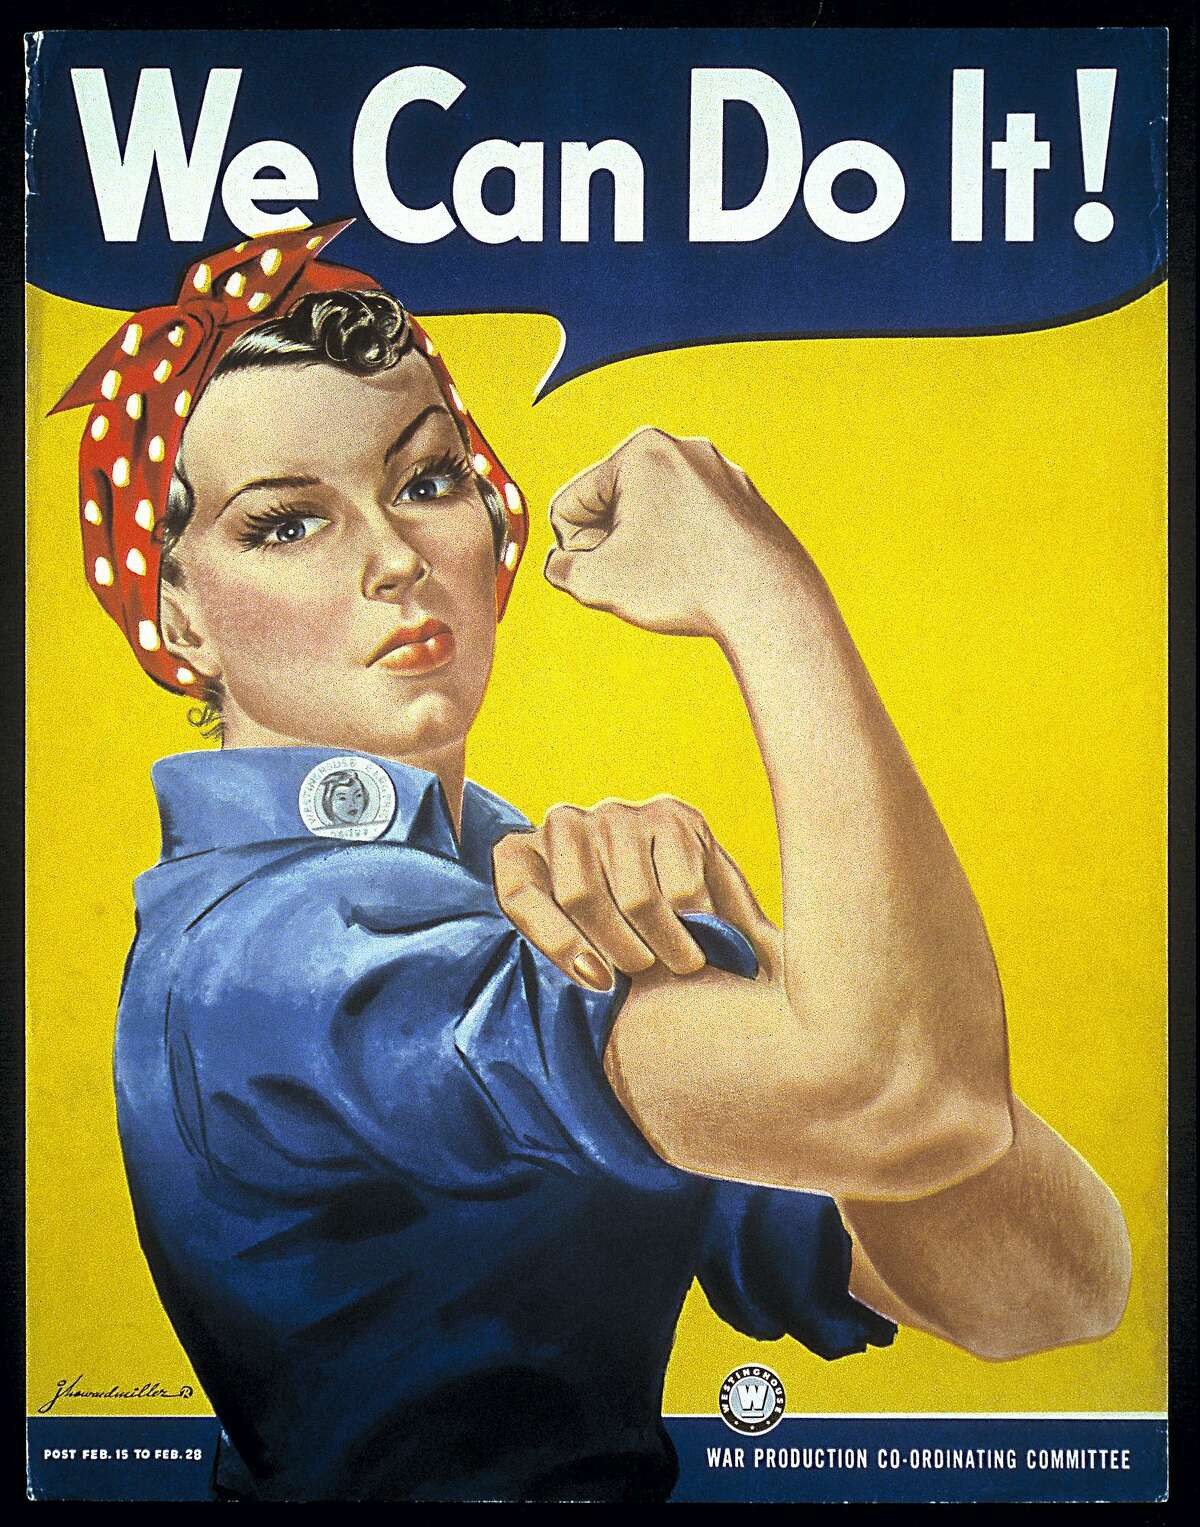 A free, illustrated lecture on the real story of Rosie the Riveter will be presented by Historian and Director of Education at the New England Air Museum in Windsor Locks, Amanda Goodheart Parks, Ph.D., at 7 p.m. March 19 at the Essex Library, 33 West Ave. Parks will focus on Rosie's journey from propaganda poster to feminist icon. RSVP: 860 767-1560.